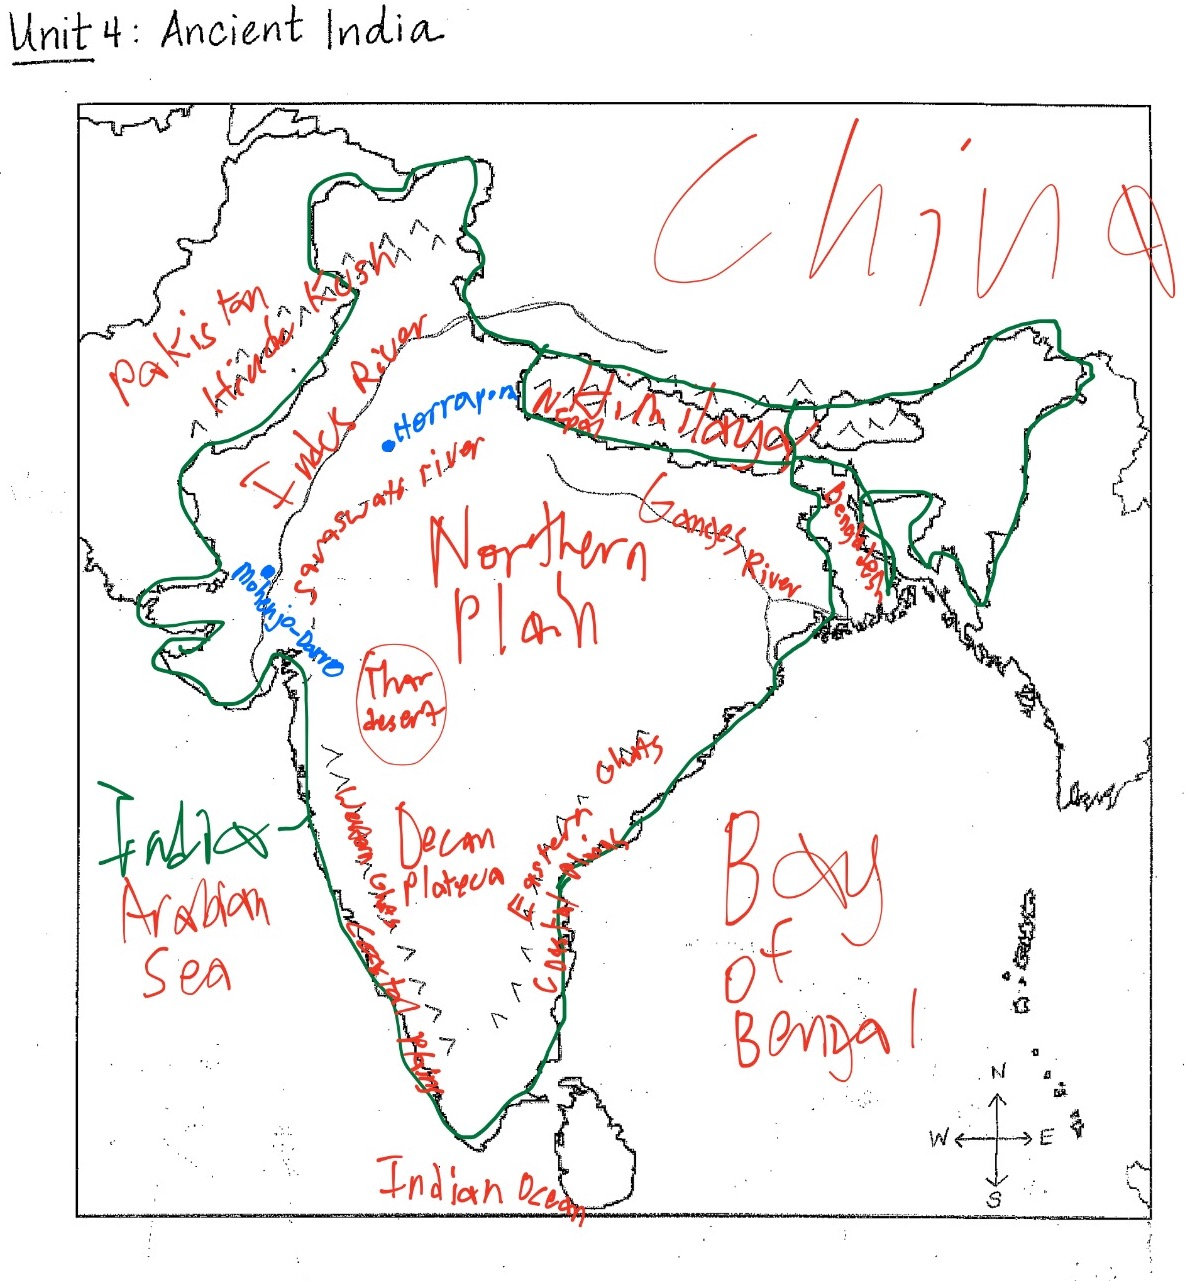 Ancient India Map (S.S.)